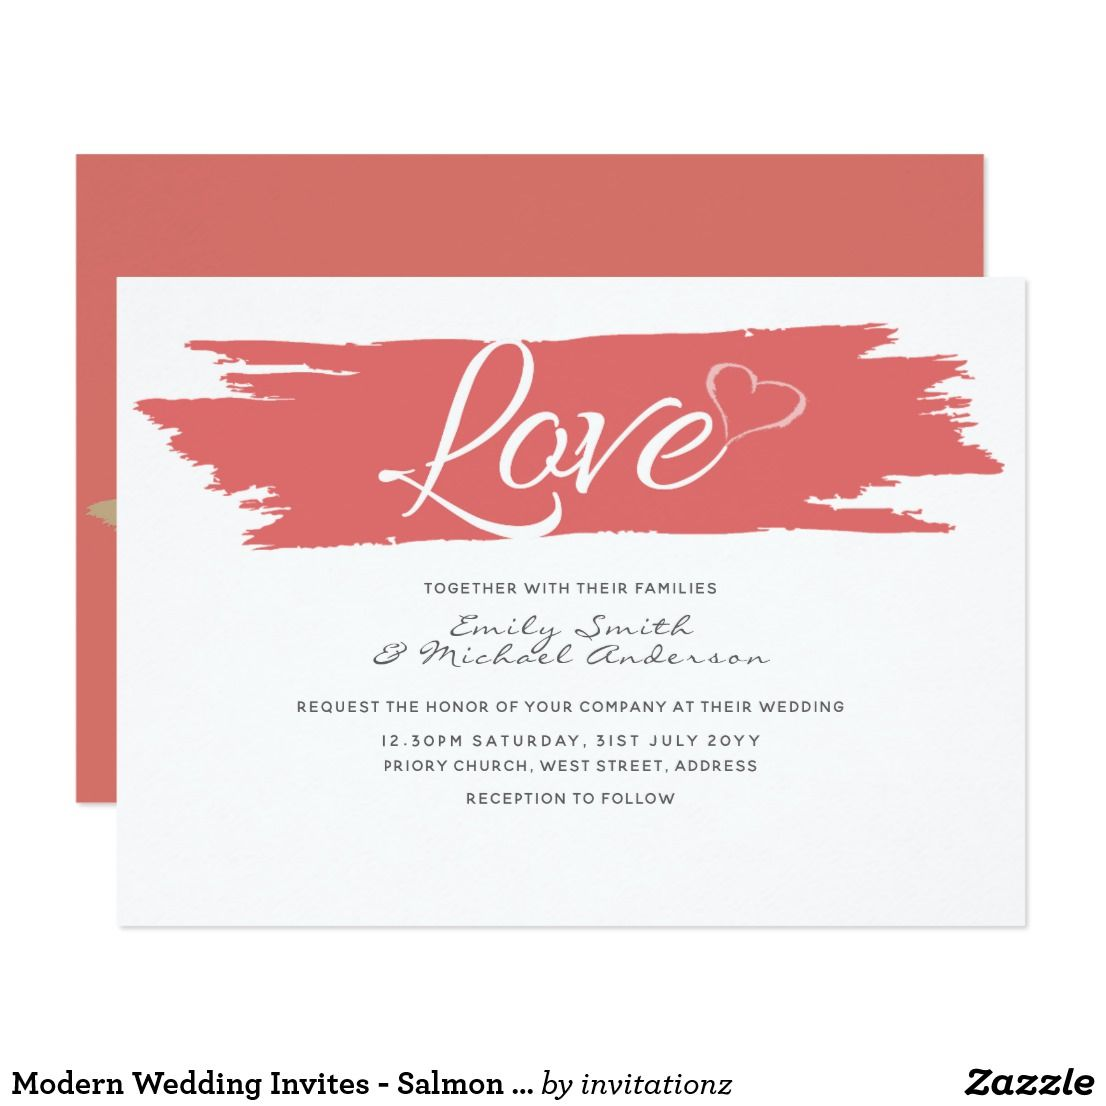 Modern Wedding Invites - Salmon Pink | Gift Ideas Generator | Pinterest